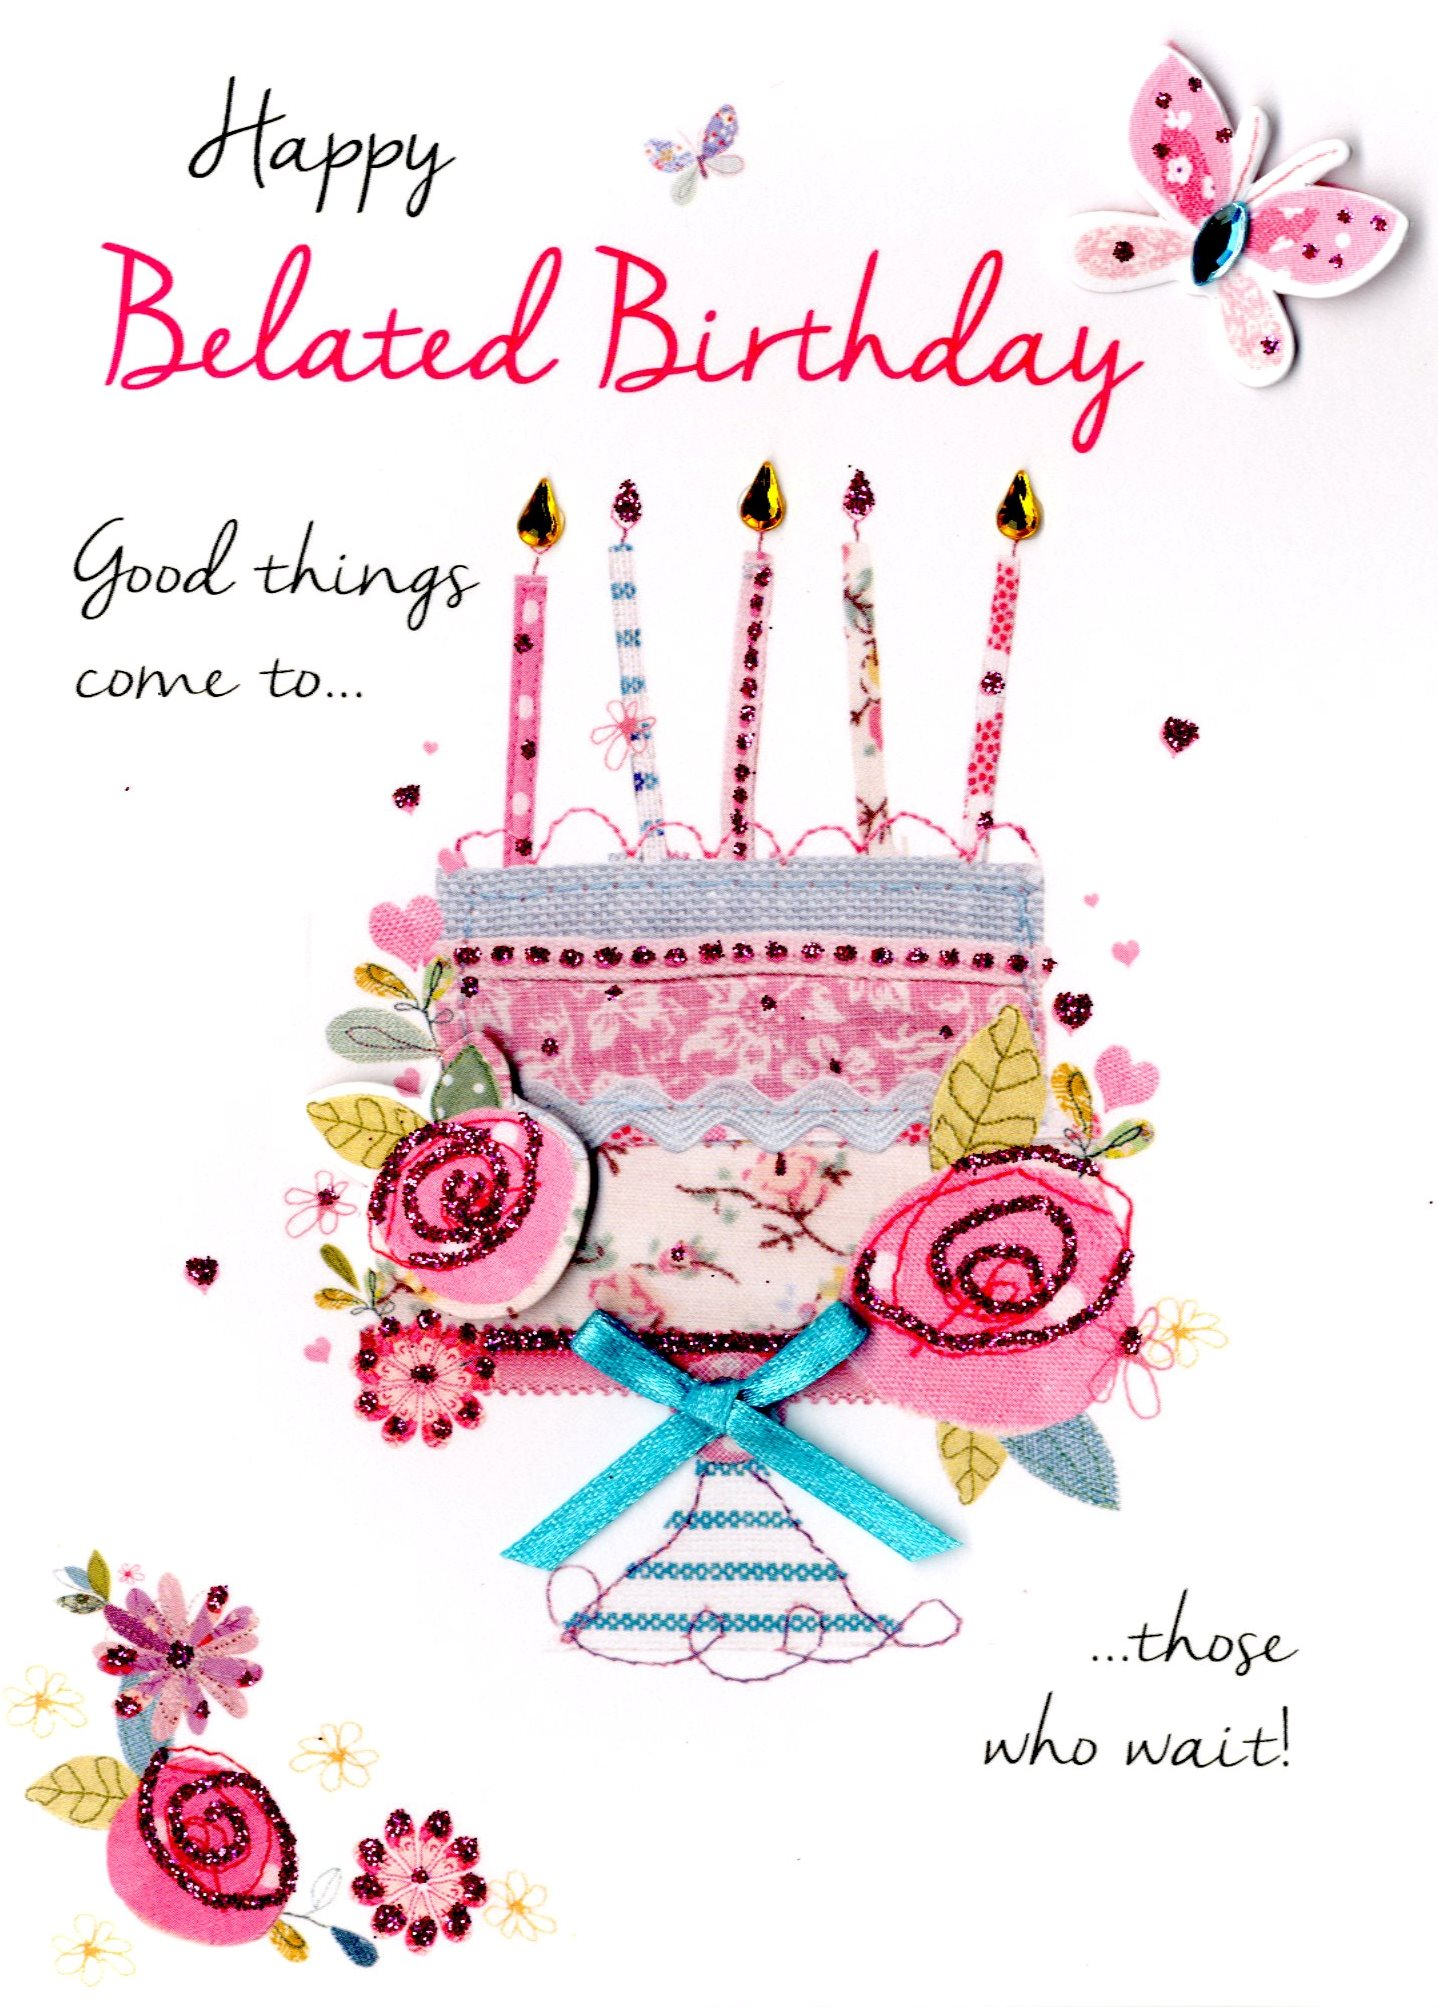 Happy Belated Birthday Greeting Card Cards – Belated Birthday Card